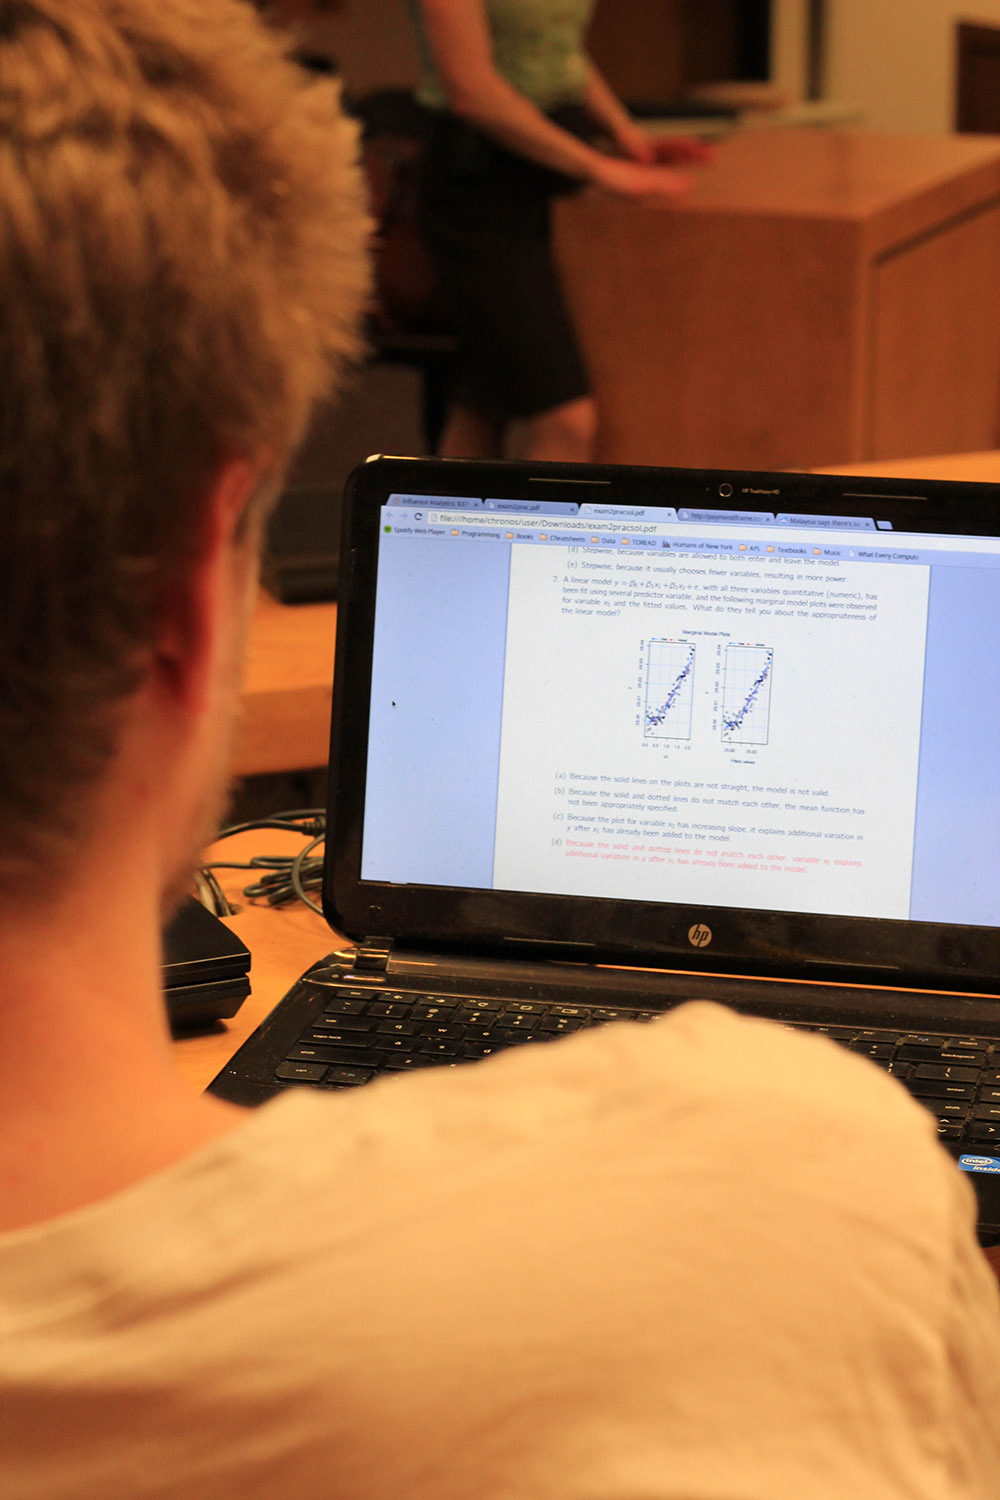 A statistics student reads a document on his laptop